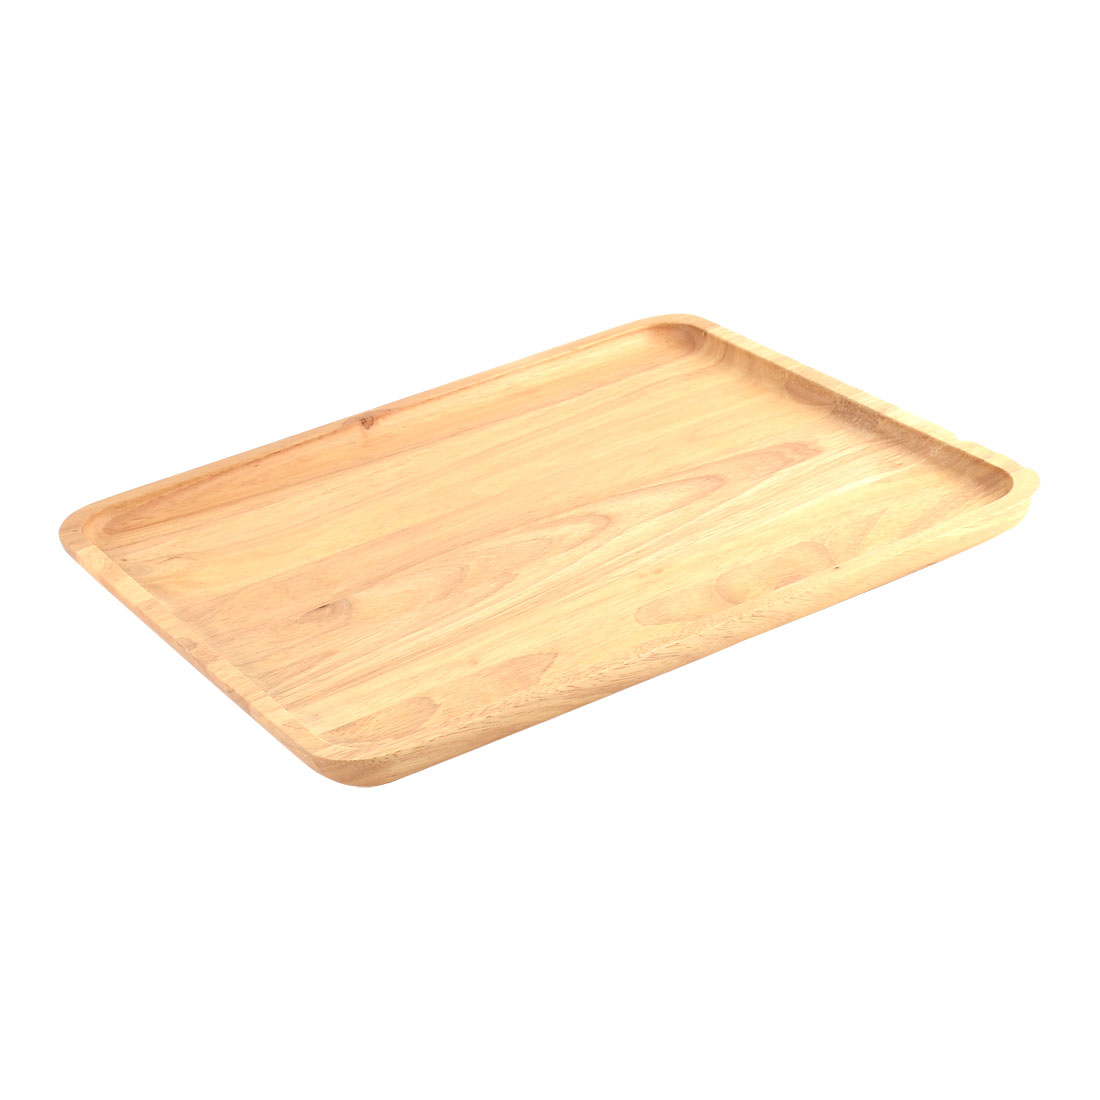 Restaurant Wood Grain Pattern Rectangle Shape Food Drinks Serving Tray